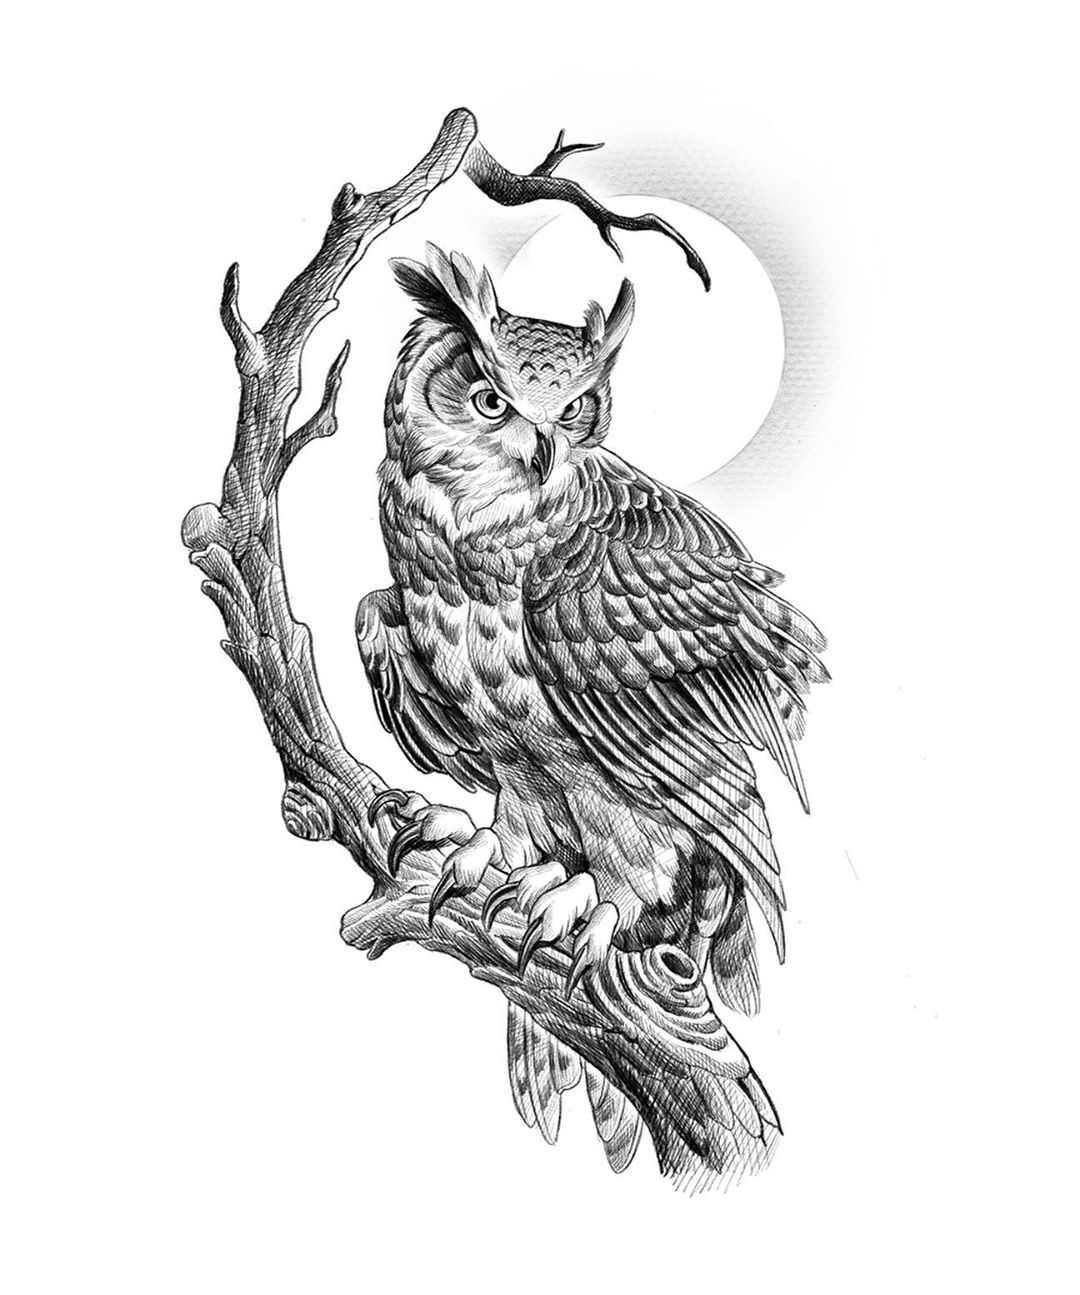 sketch of owl for tattoo